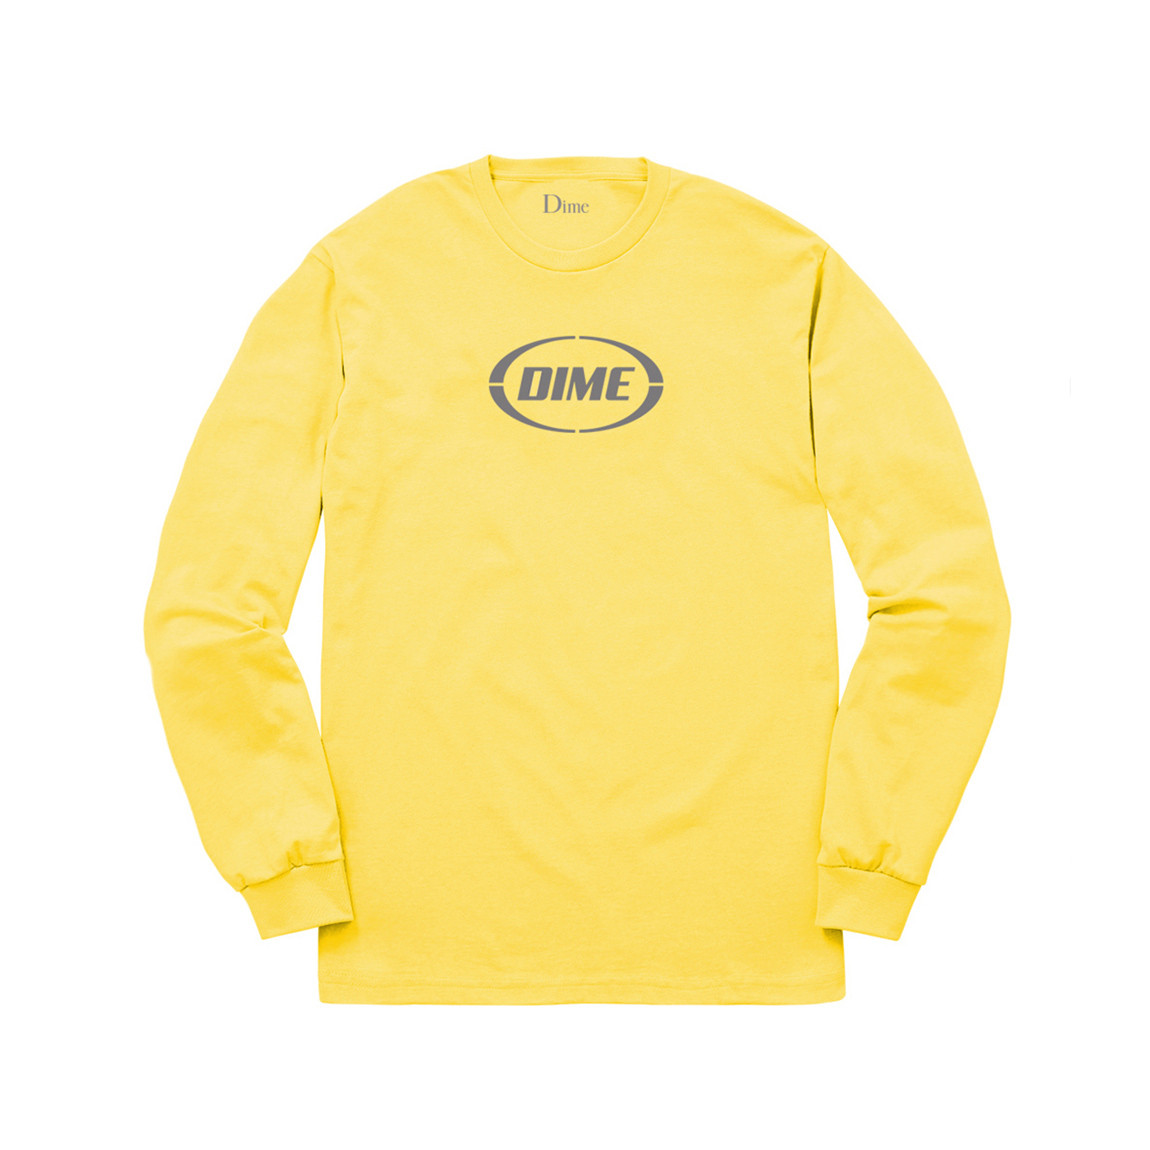 fast-LS-shirt-yellow_copy.jpg